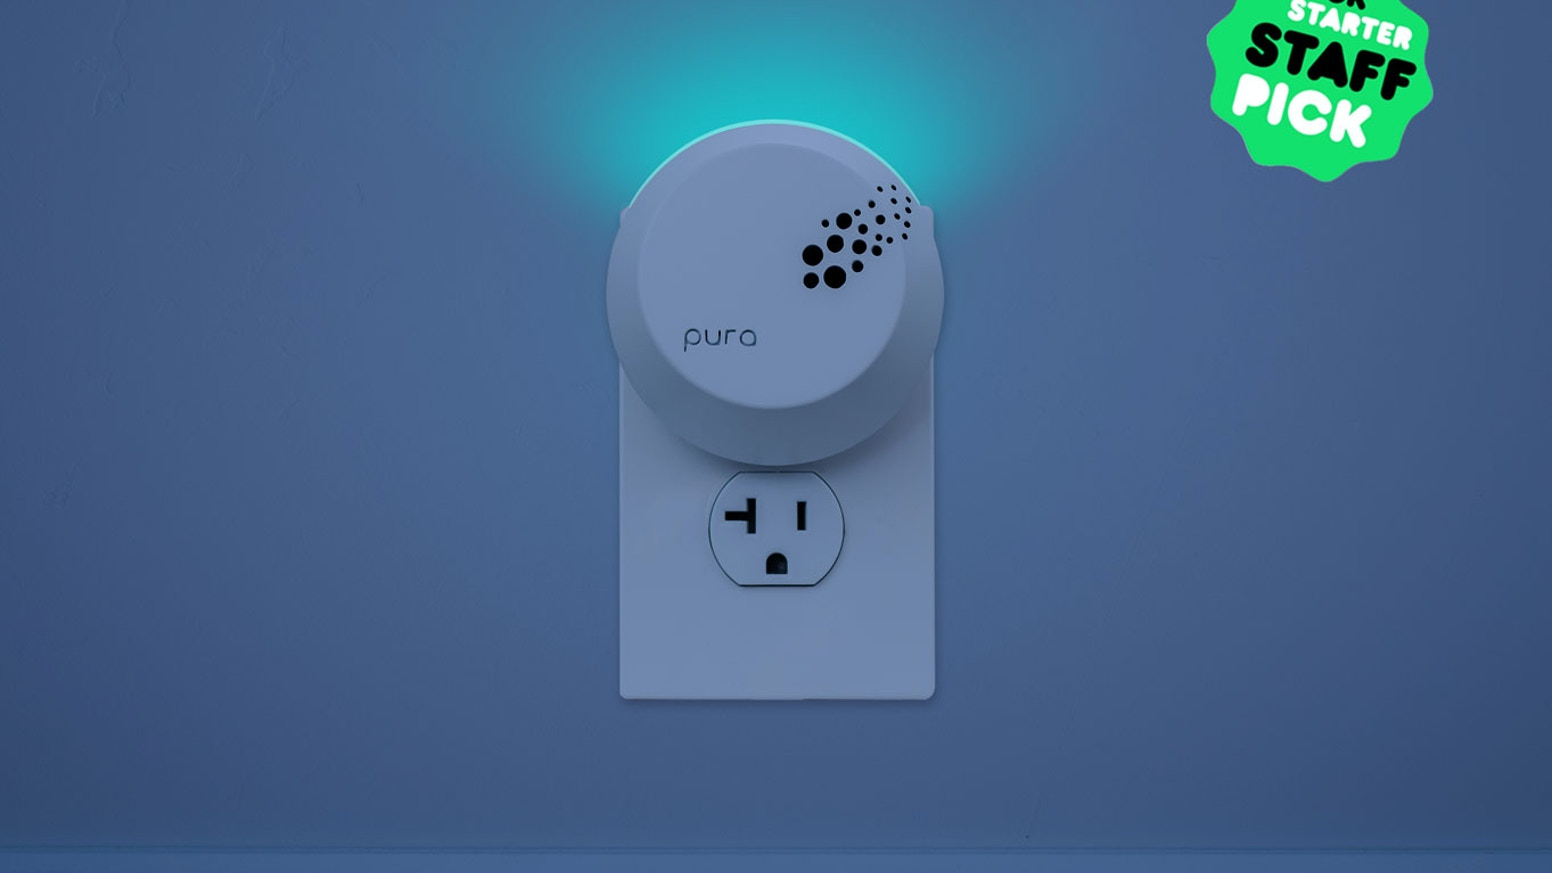 Customize the aroma of any space from a smartphone + a multi-colored smart nightlight that you control.